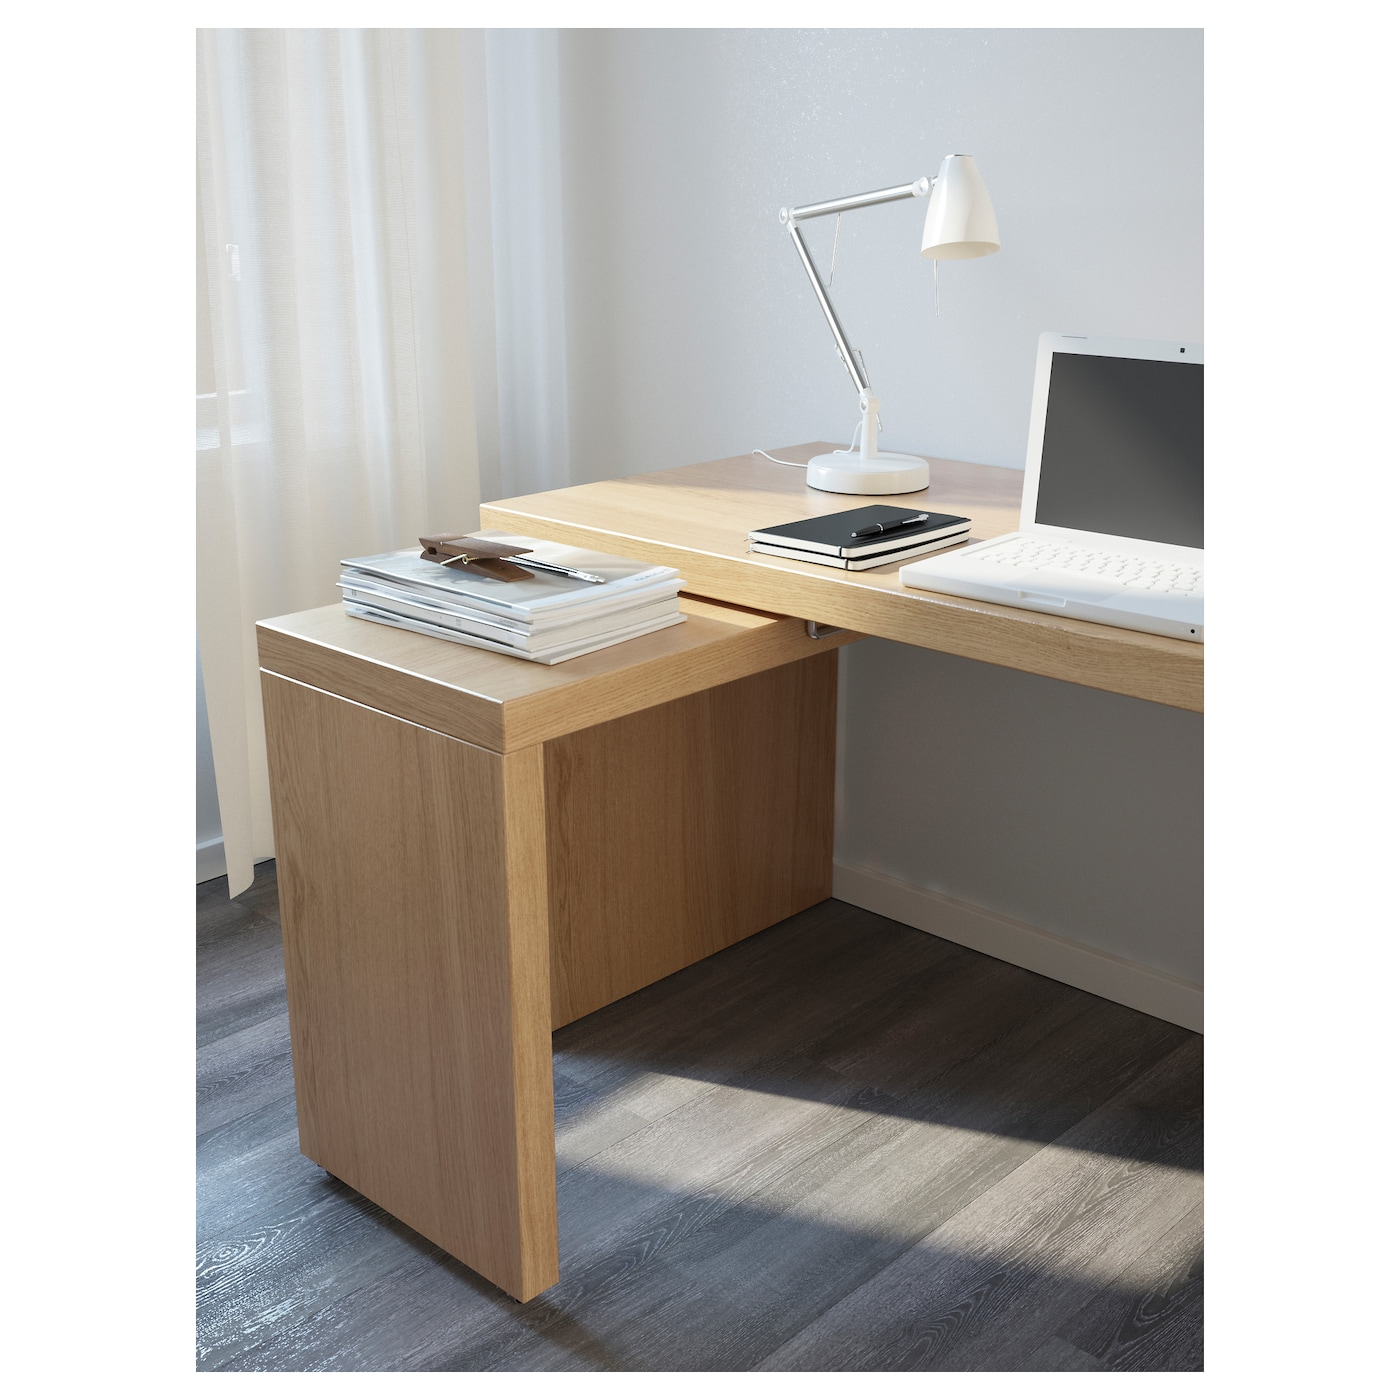 IKEA MALM desk with pull-out panel The pull-out panel gives you an extra work surface.